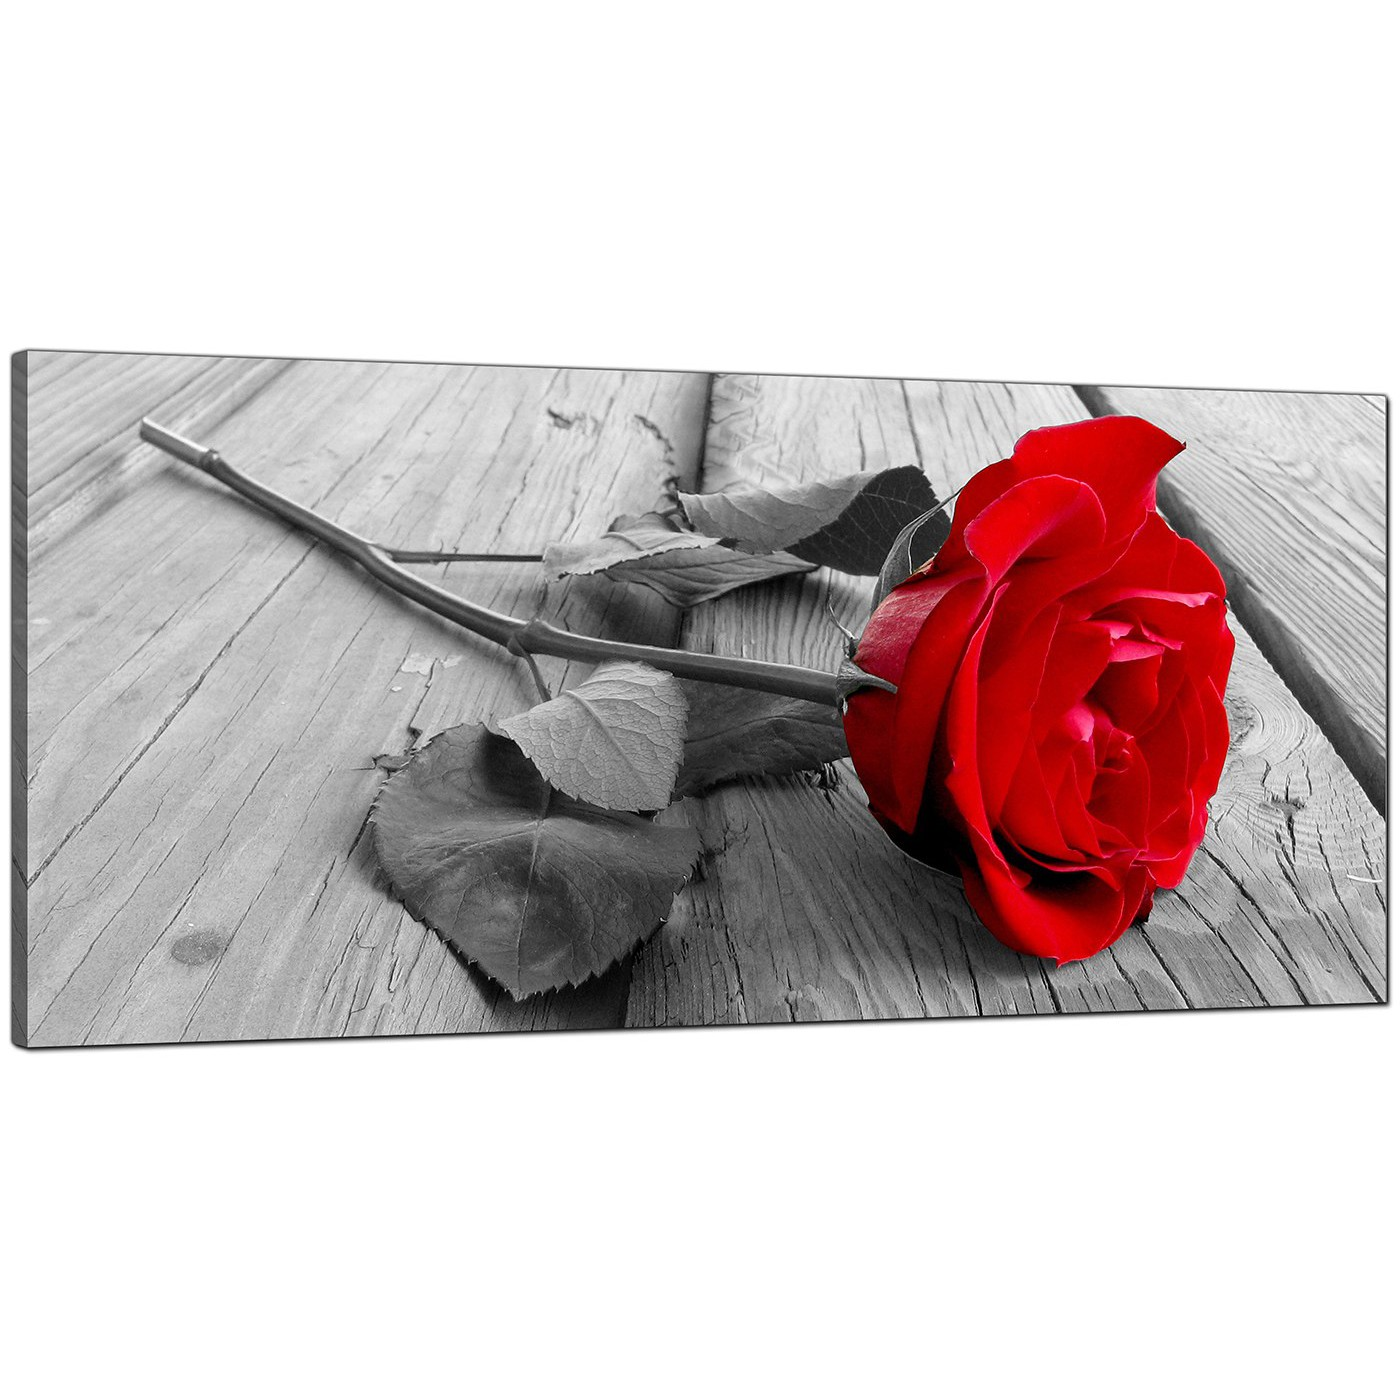 Cheap black and white canvas prints of a red rose flower display gallery item 4 red living room large canvas of flowers display gallery item 5 izmirmasajfo